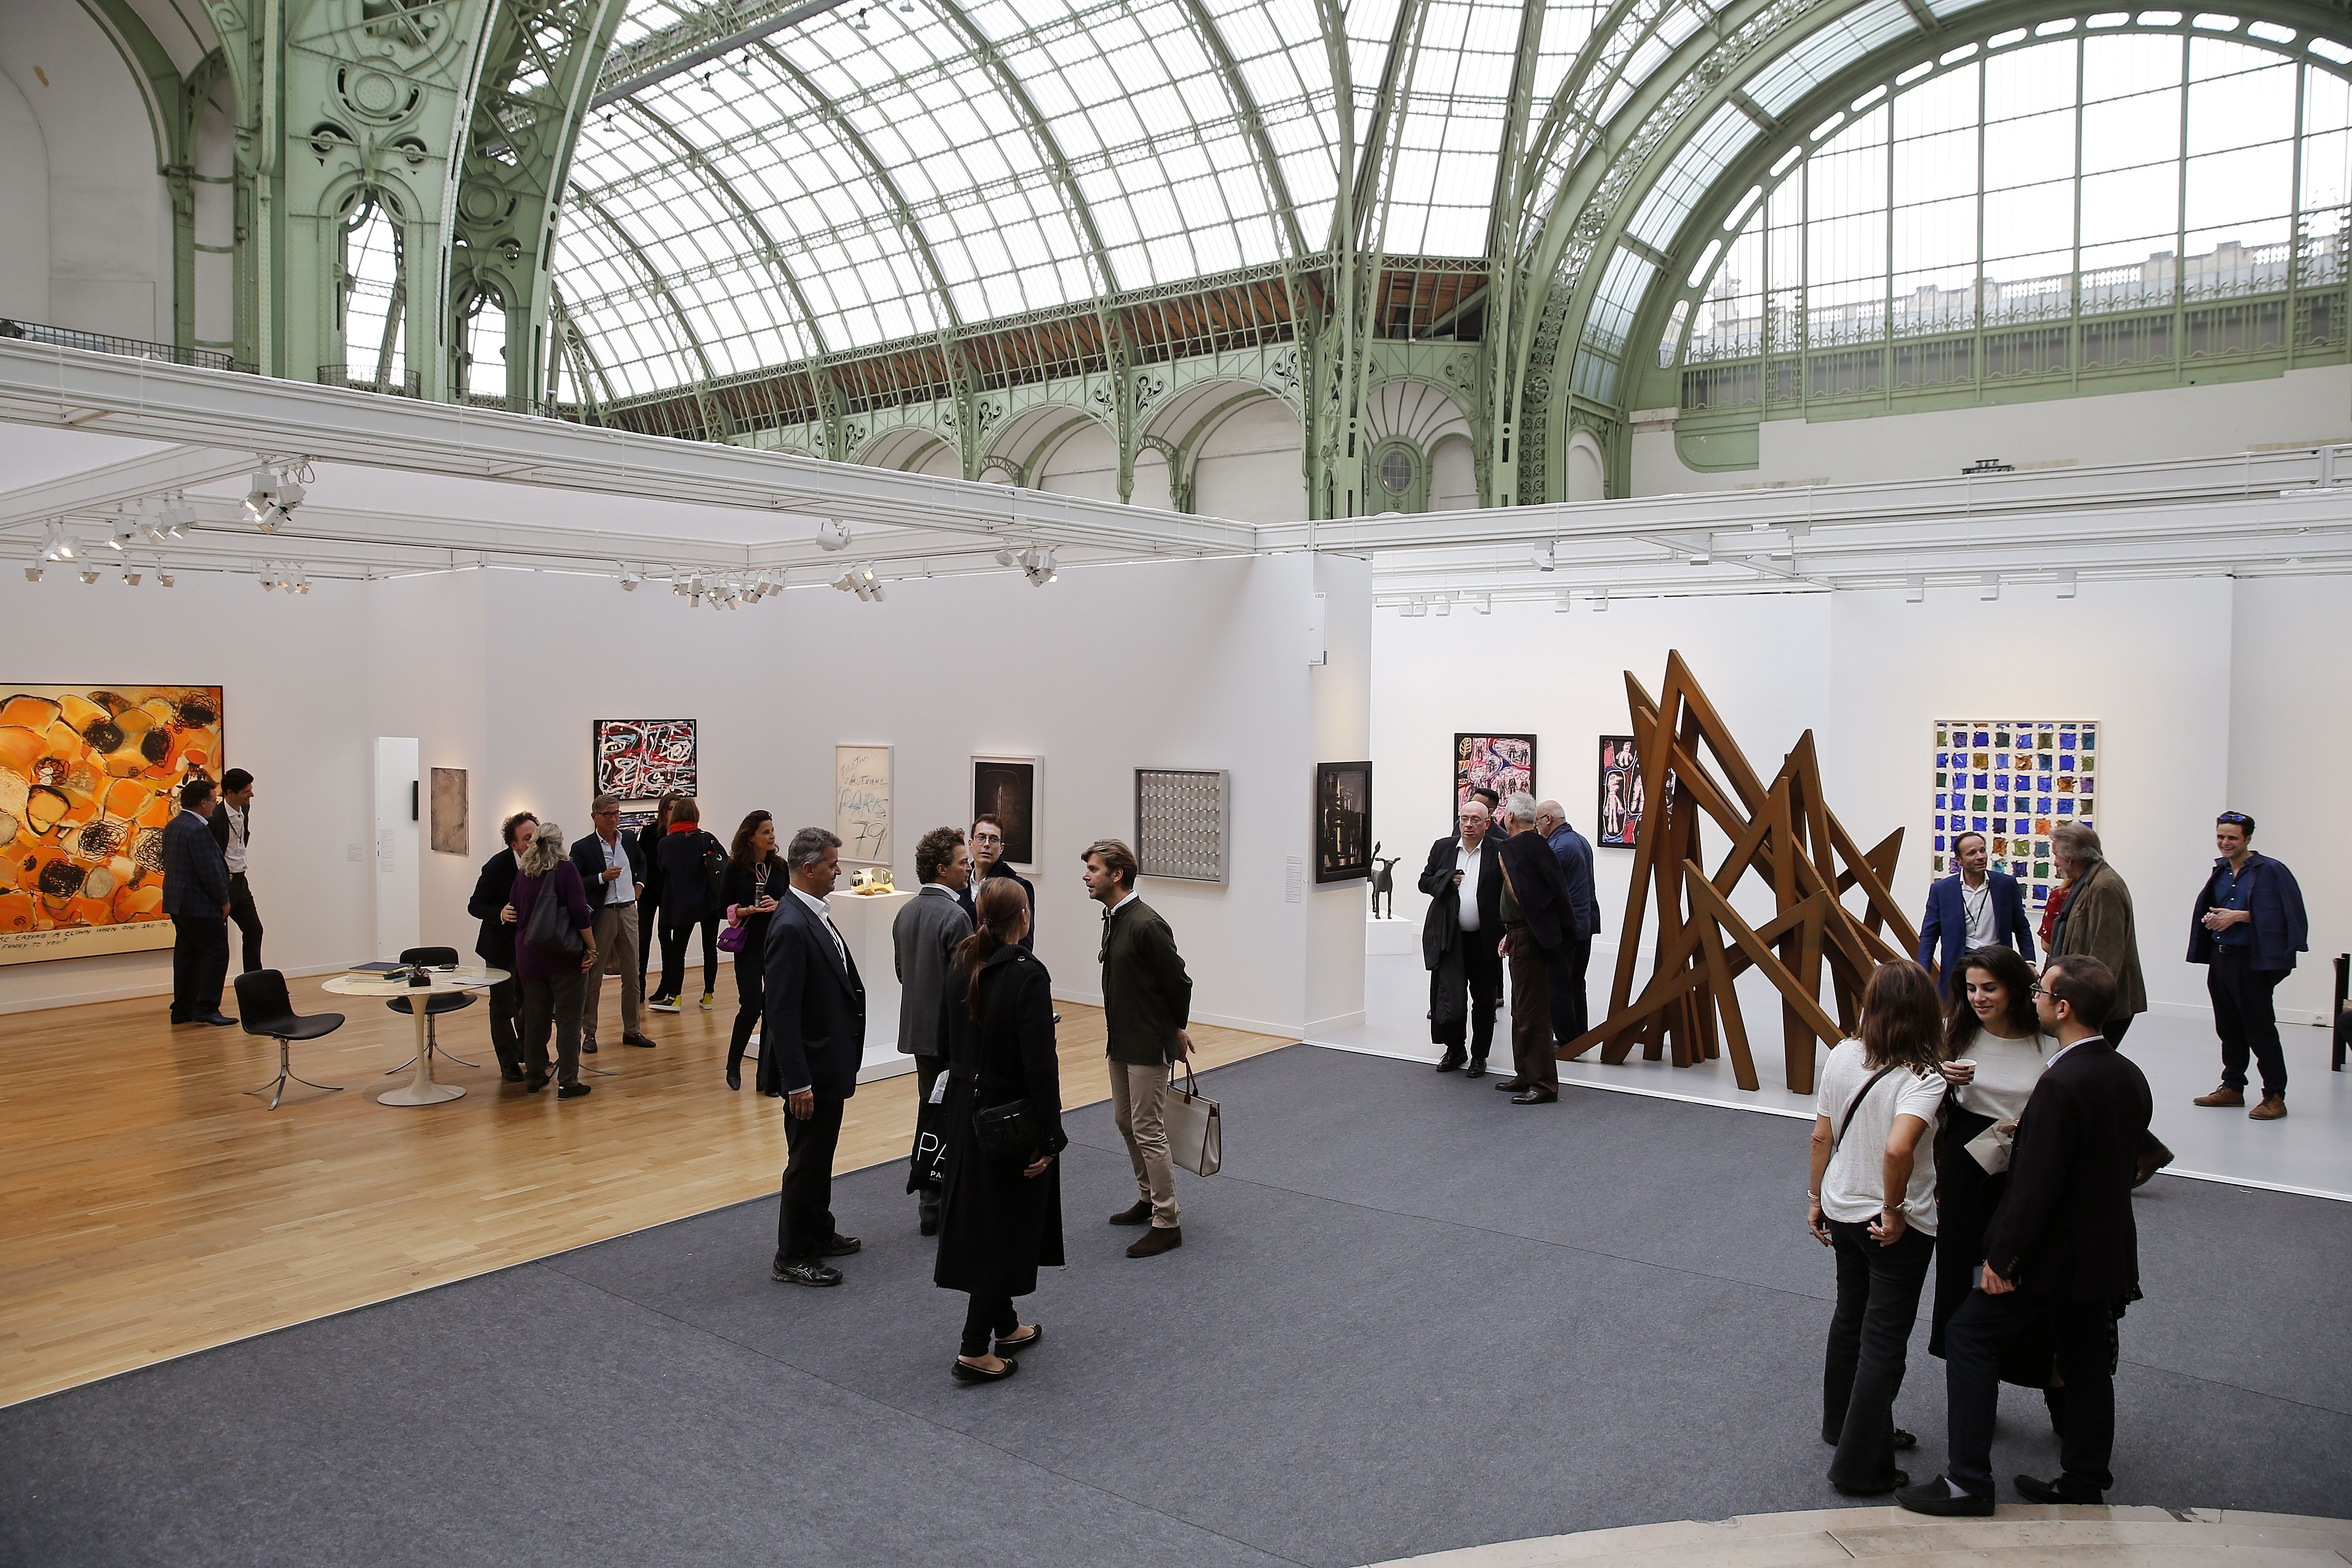 The Grand Palais is one of the outstanding structures from the Belle Epoque era in Paris.